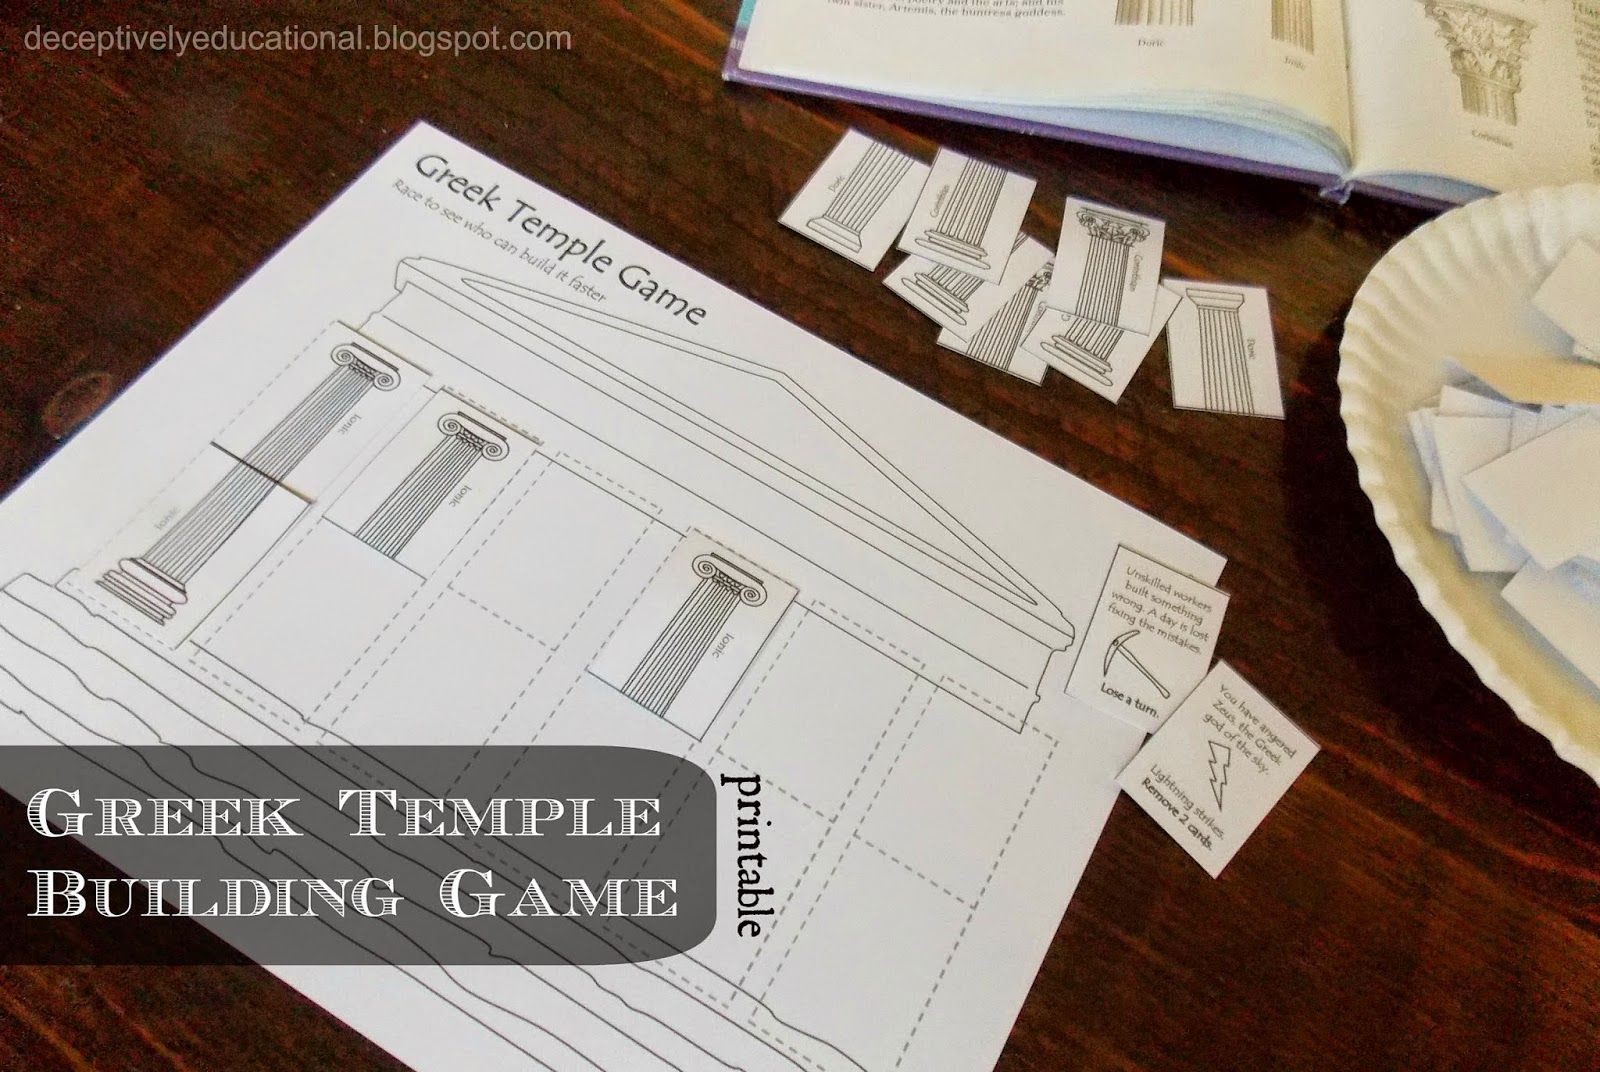 ancient greek temple building game printable homeschool